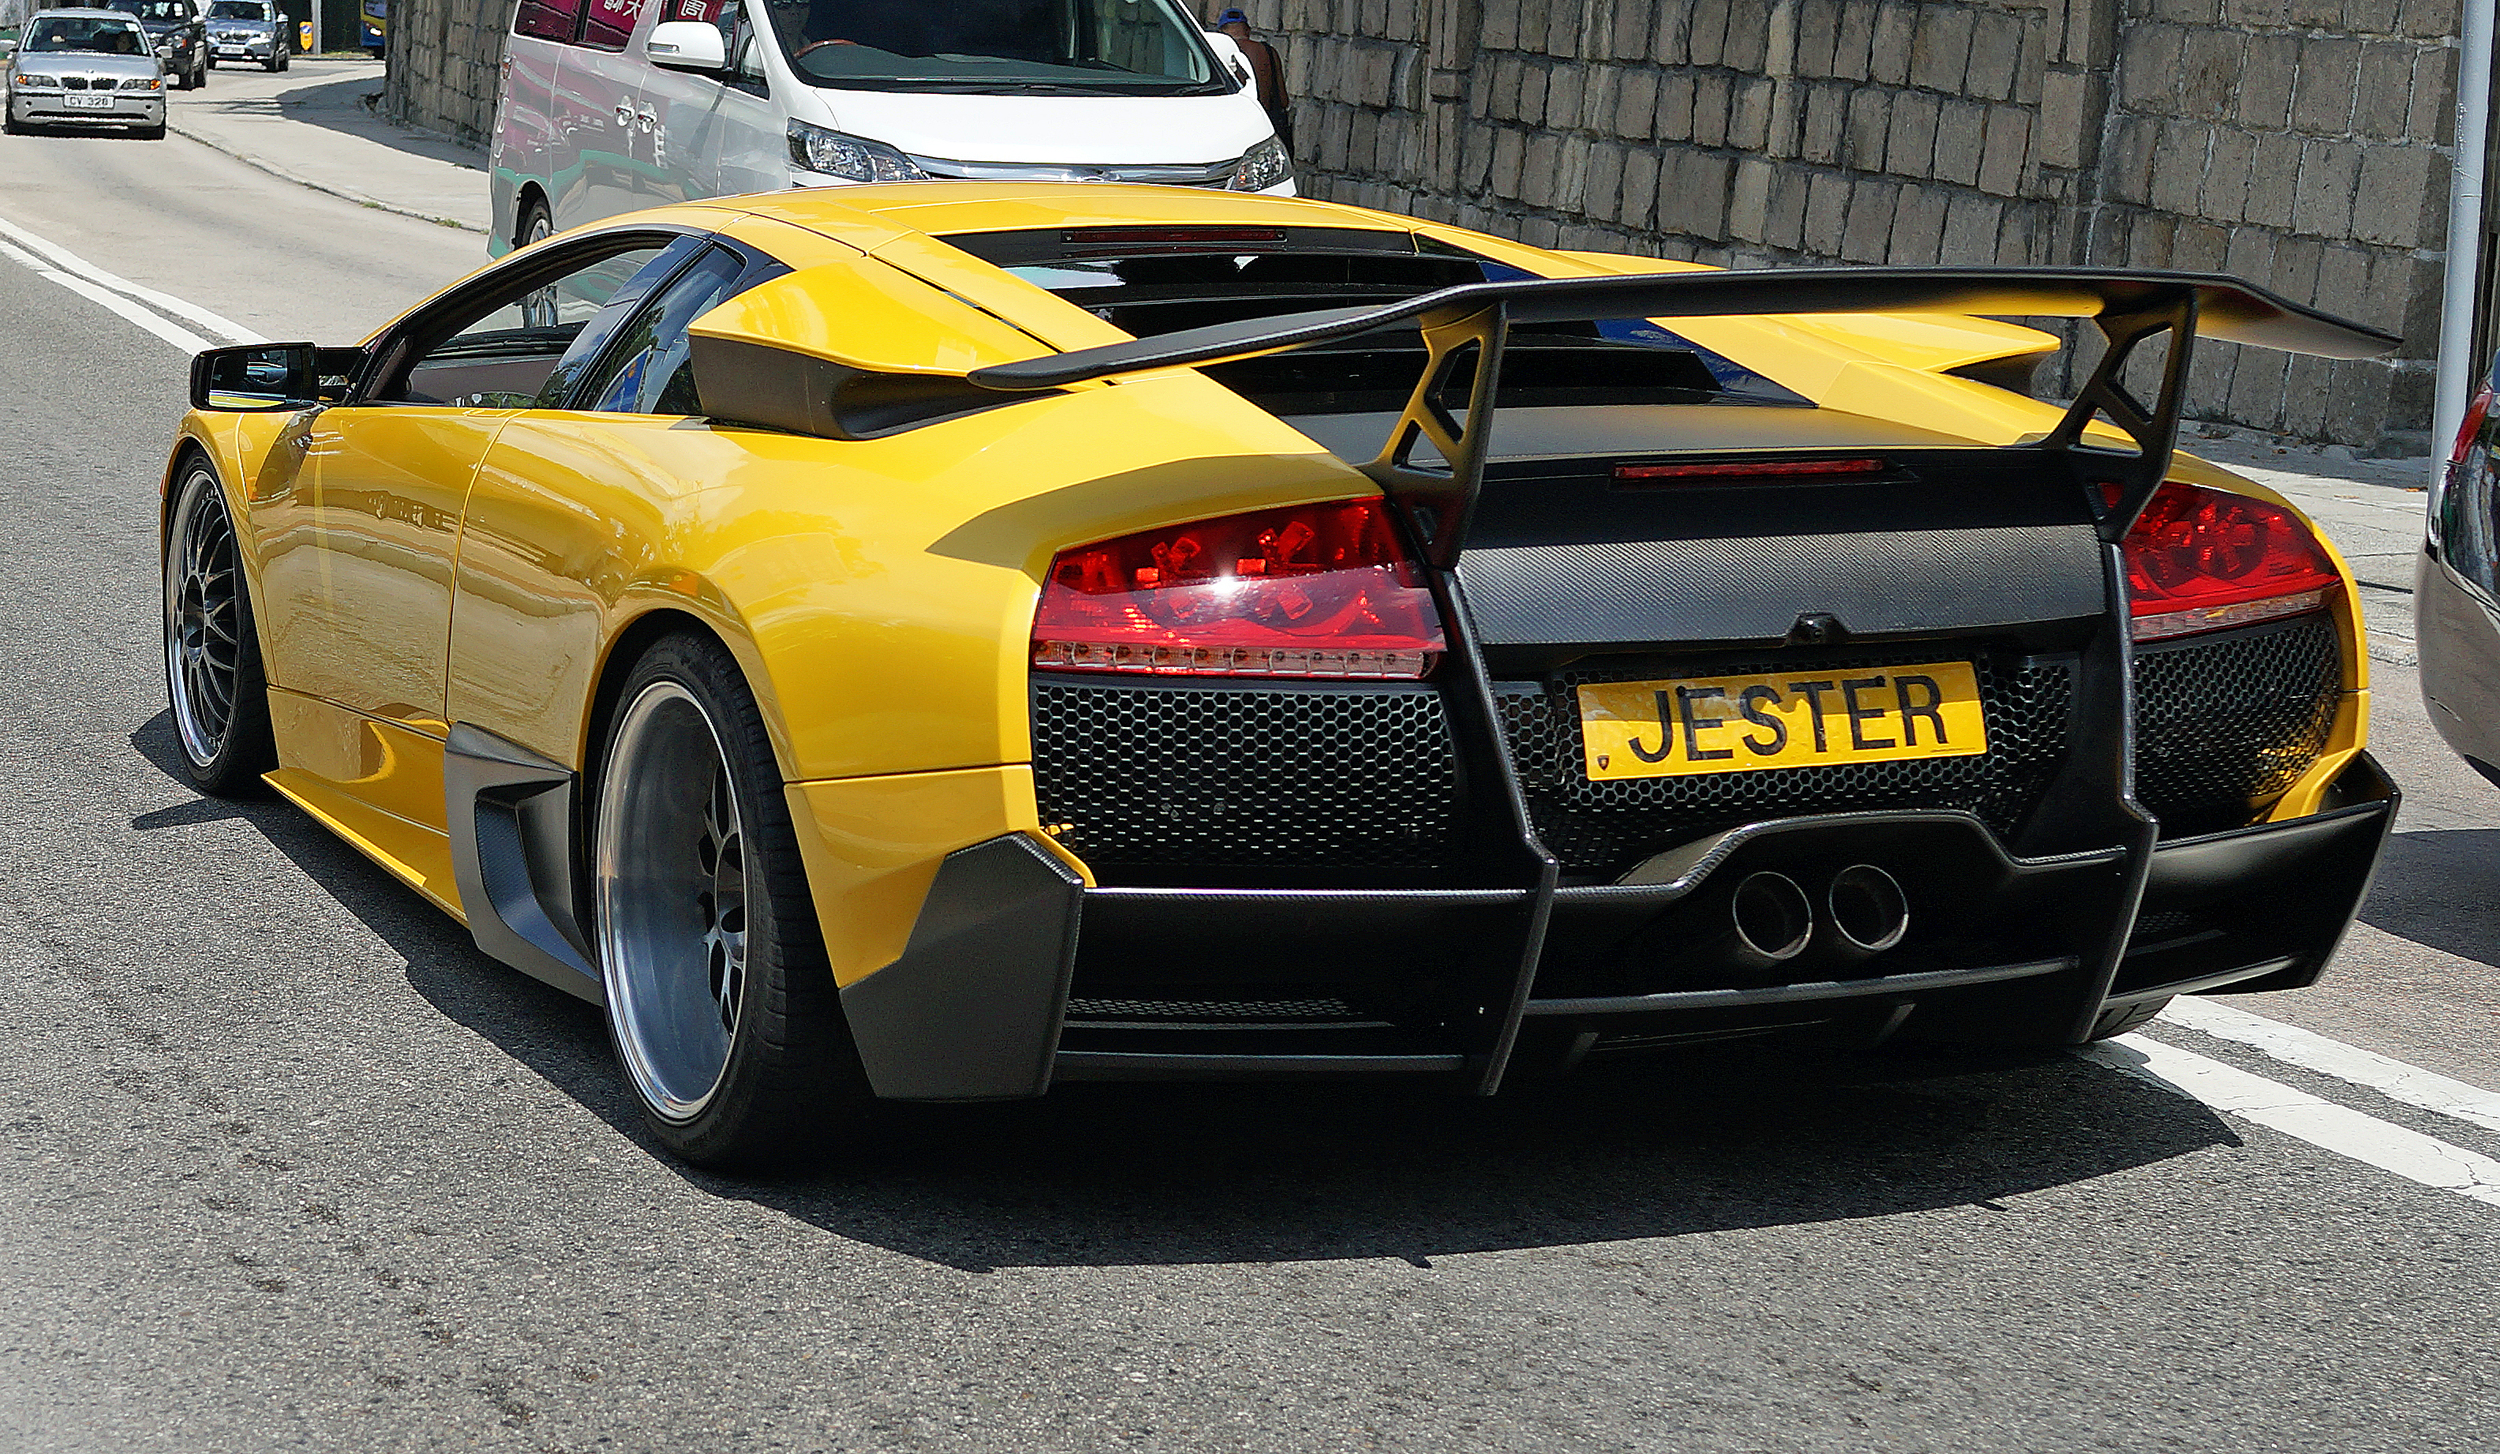 Lamborghini - JESTER  / An older model Lamborghini with a great number plate, holy smoke!